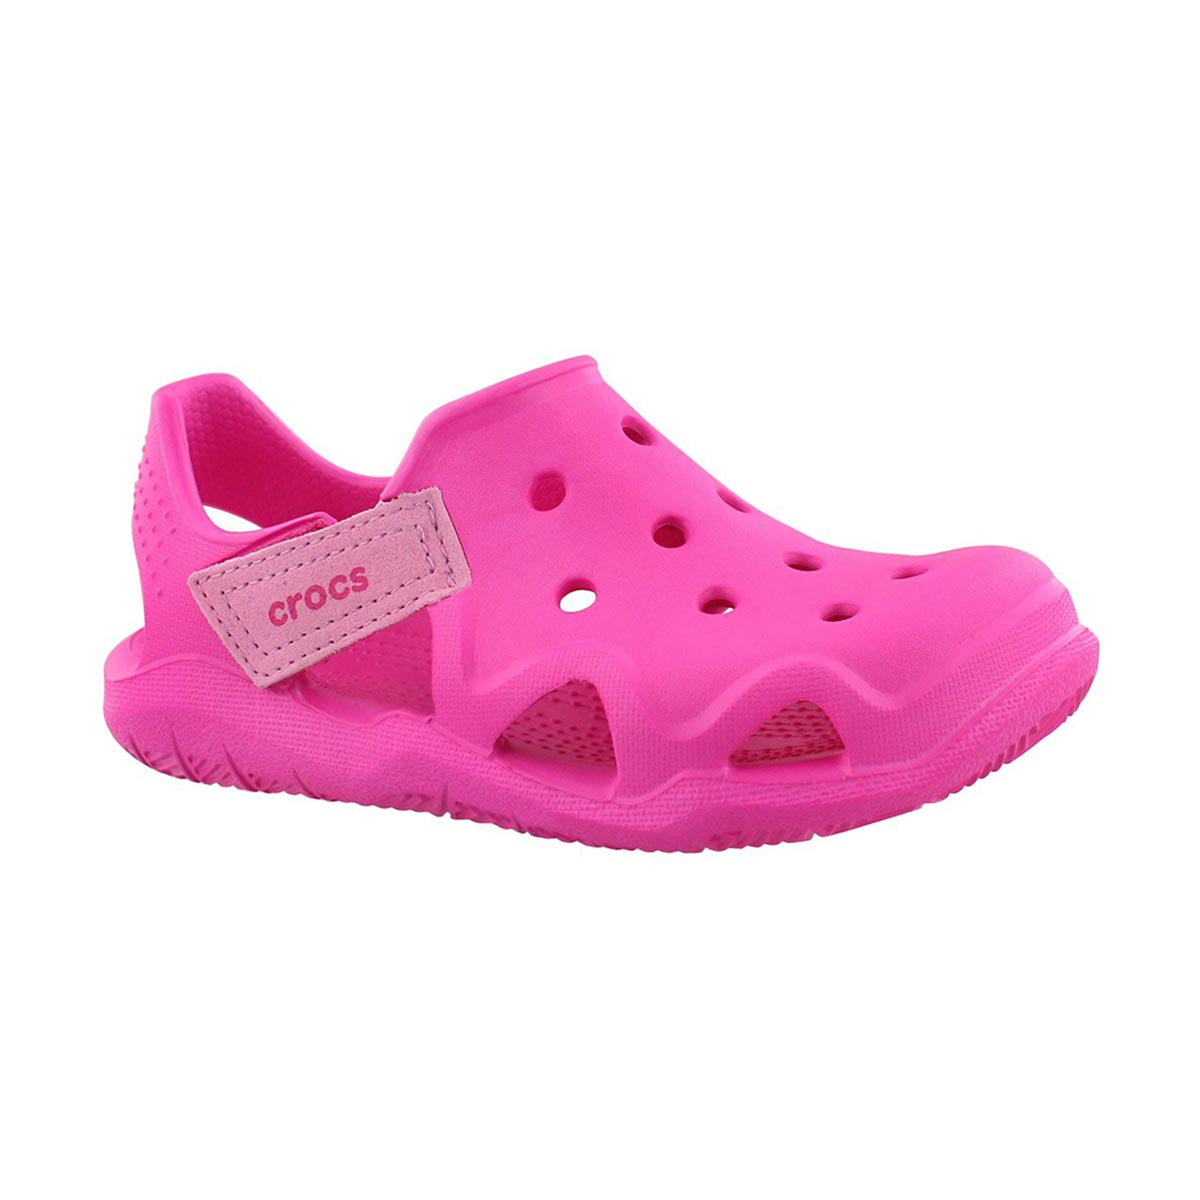 Girls' SWIFTWATER WAVE pink casual sandals